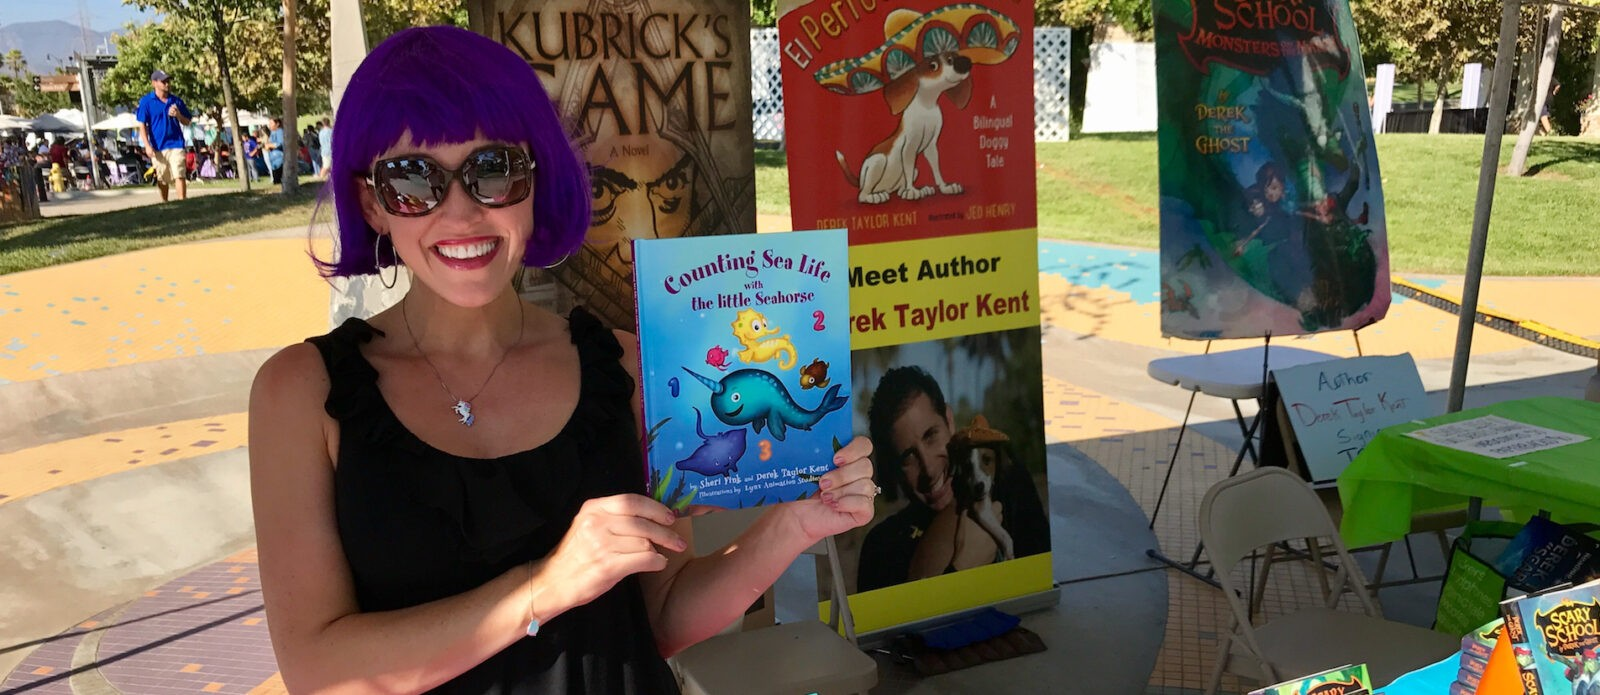 Sheri Fink and Counting Sea Life with the Little Seahorse book